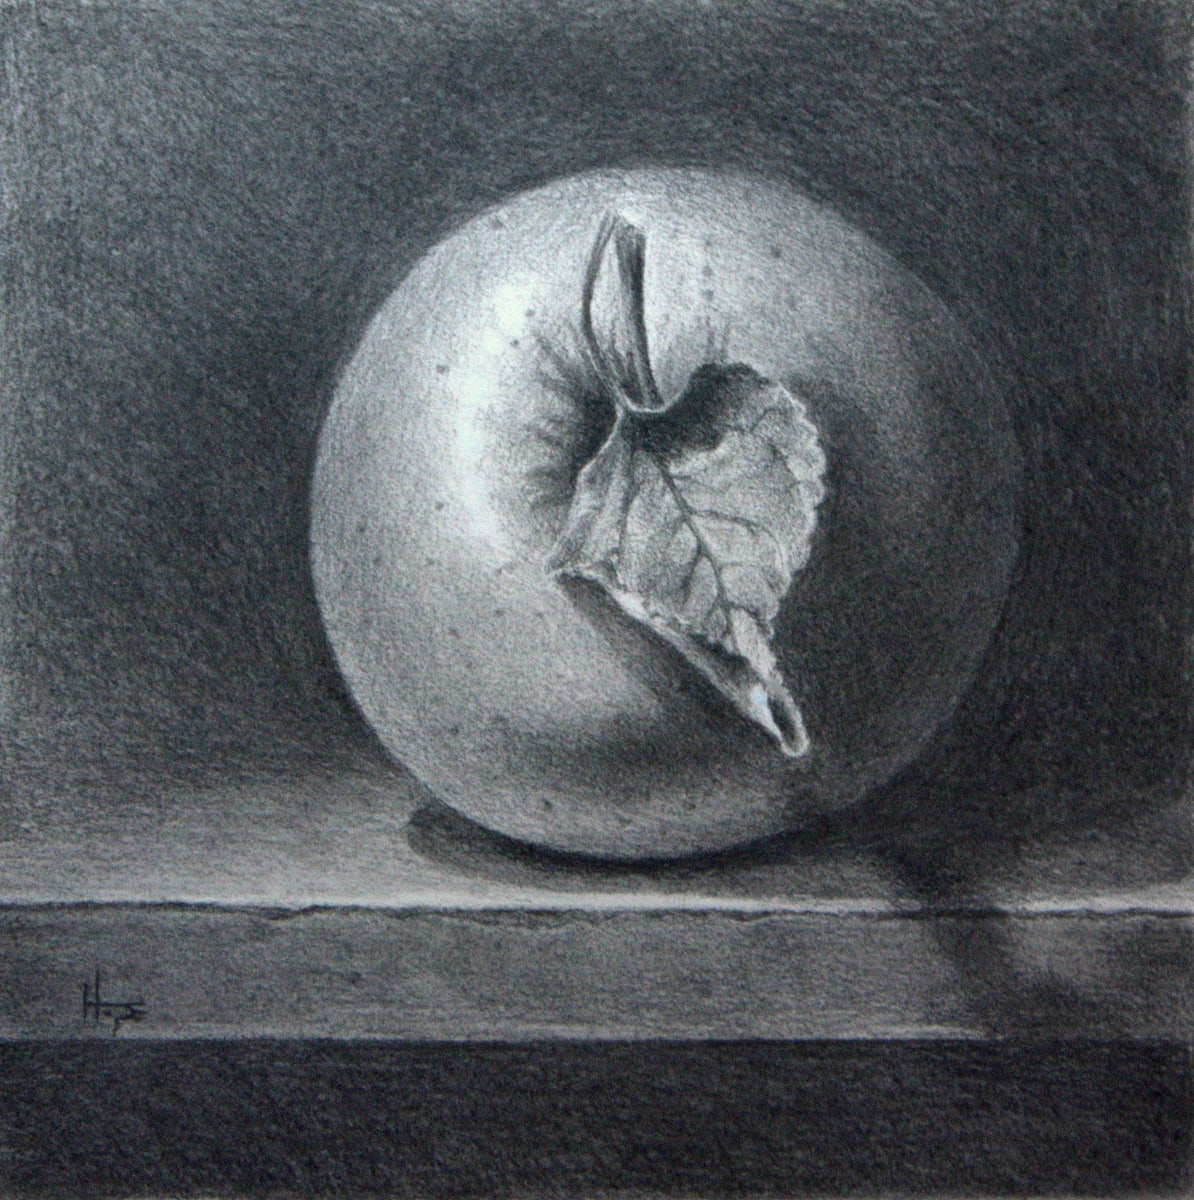 Apple Study by Hope Martin